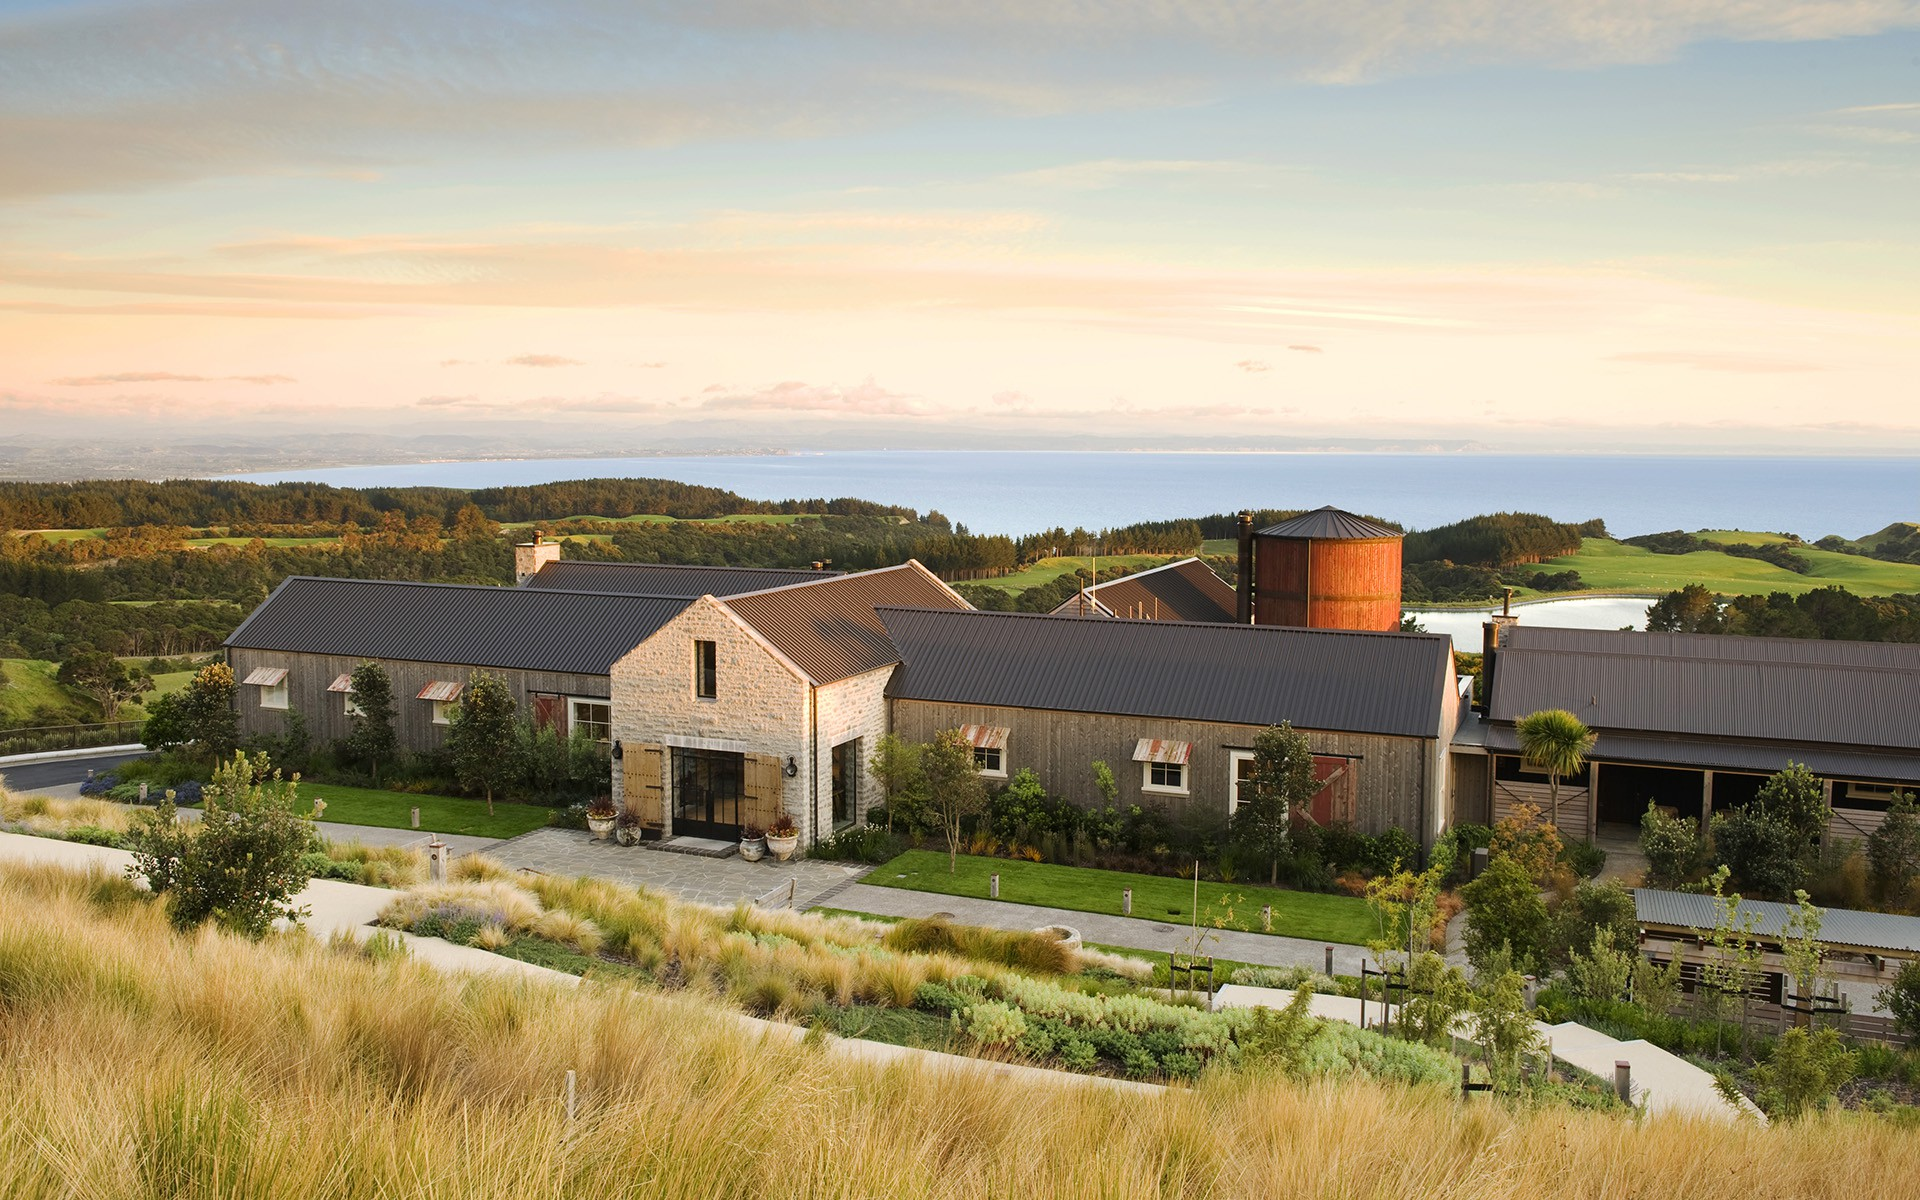 tHE FARM AT CAPE KIDNAPPERS - Hawkes Bay, New Zealand